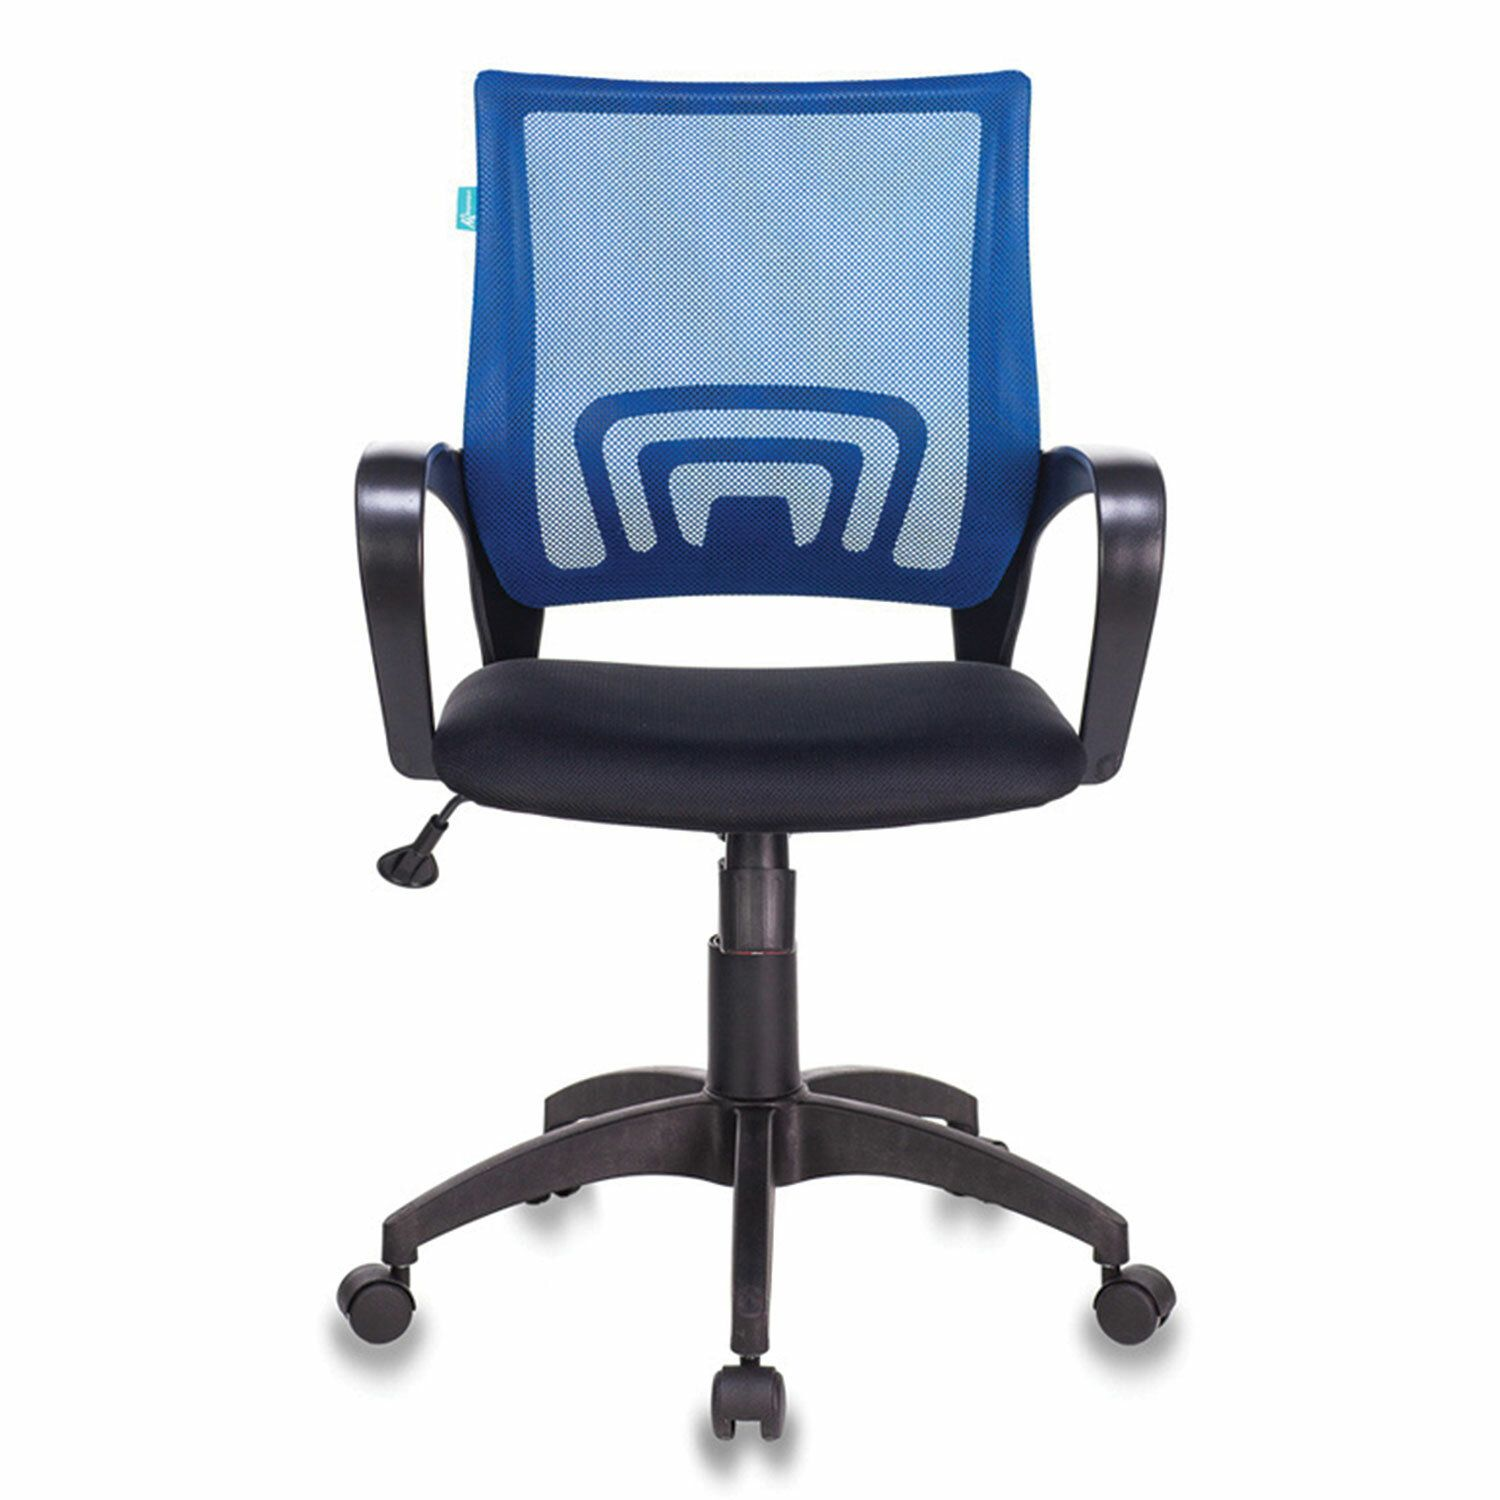 Chair CH-695N / BL / TW-11, with armrests, mesh, black / blue